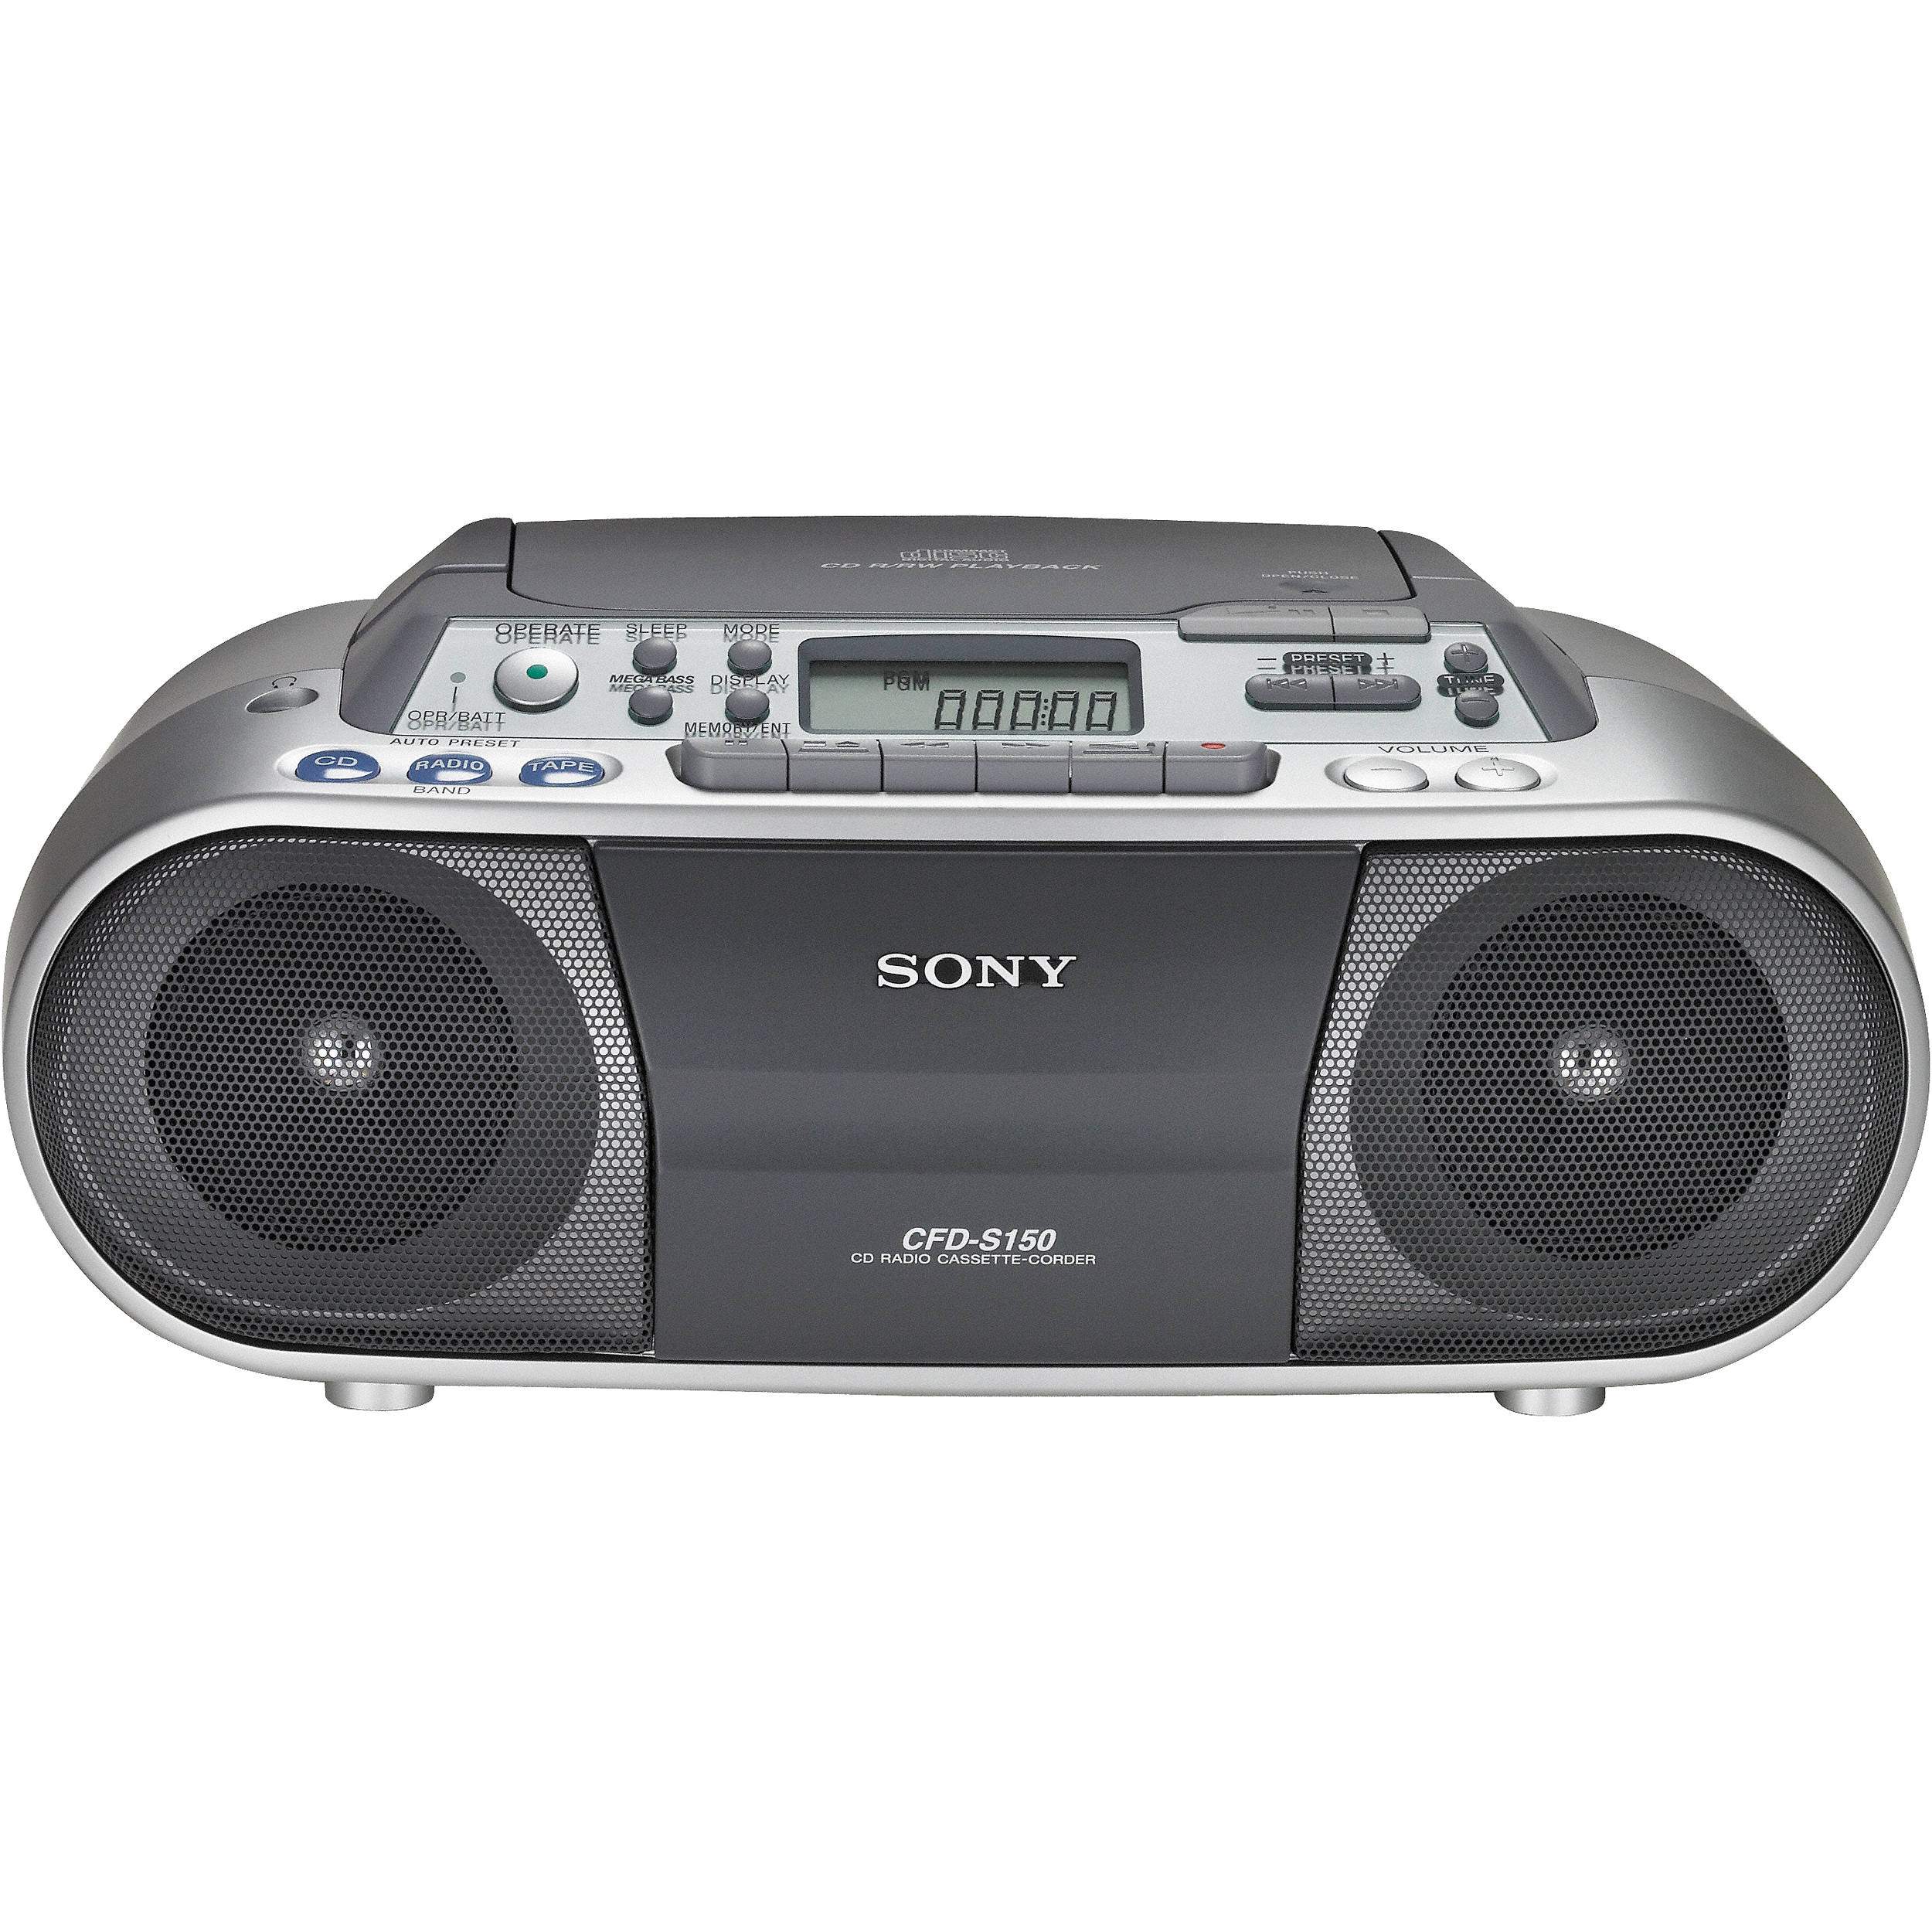 sony cfd s01 cd radio cassette recorder cfds01silver b h photo. Black Bedroom Furniture Sets. Home Design Ideas